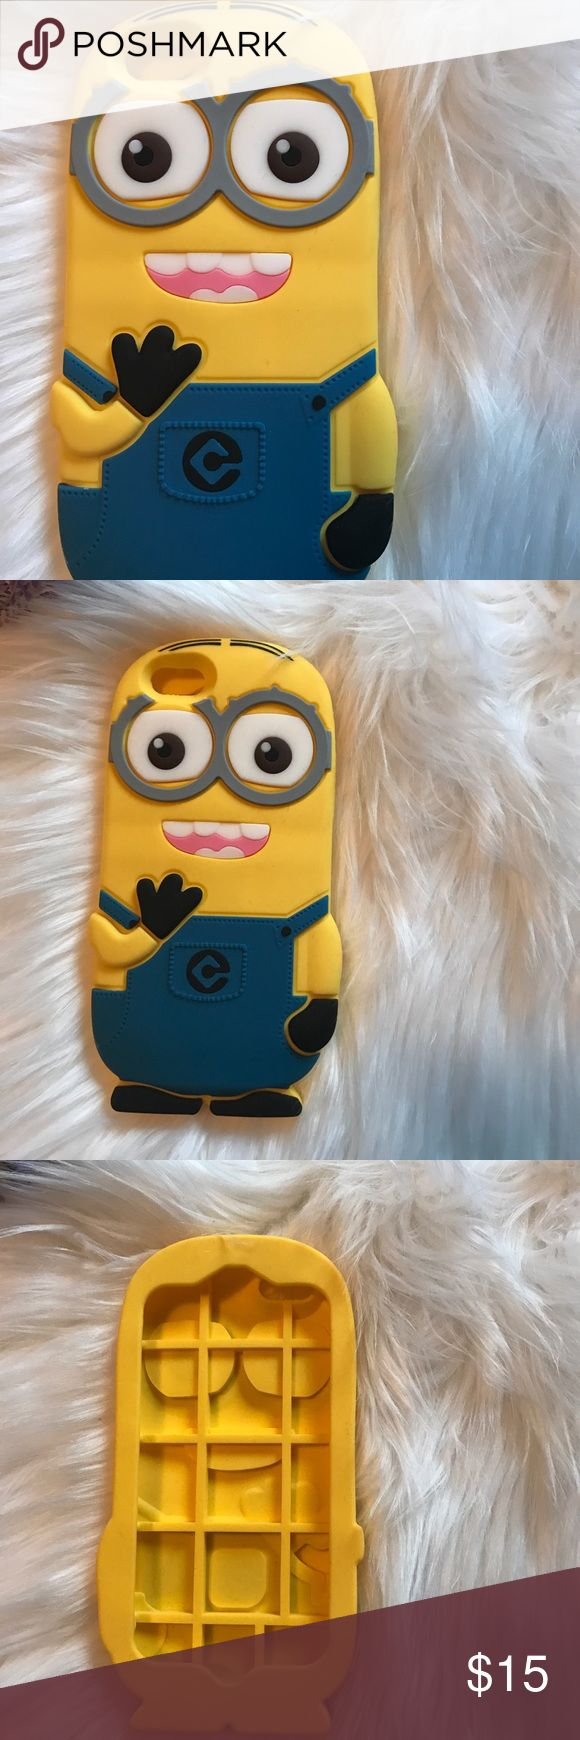 🌟JUST IN🌟Minion rubber case *Brand new *Adorable rubber Minion case for iPhone 6/6s Boutique Accessories Phone Cases